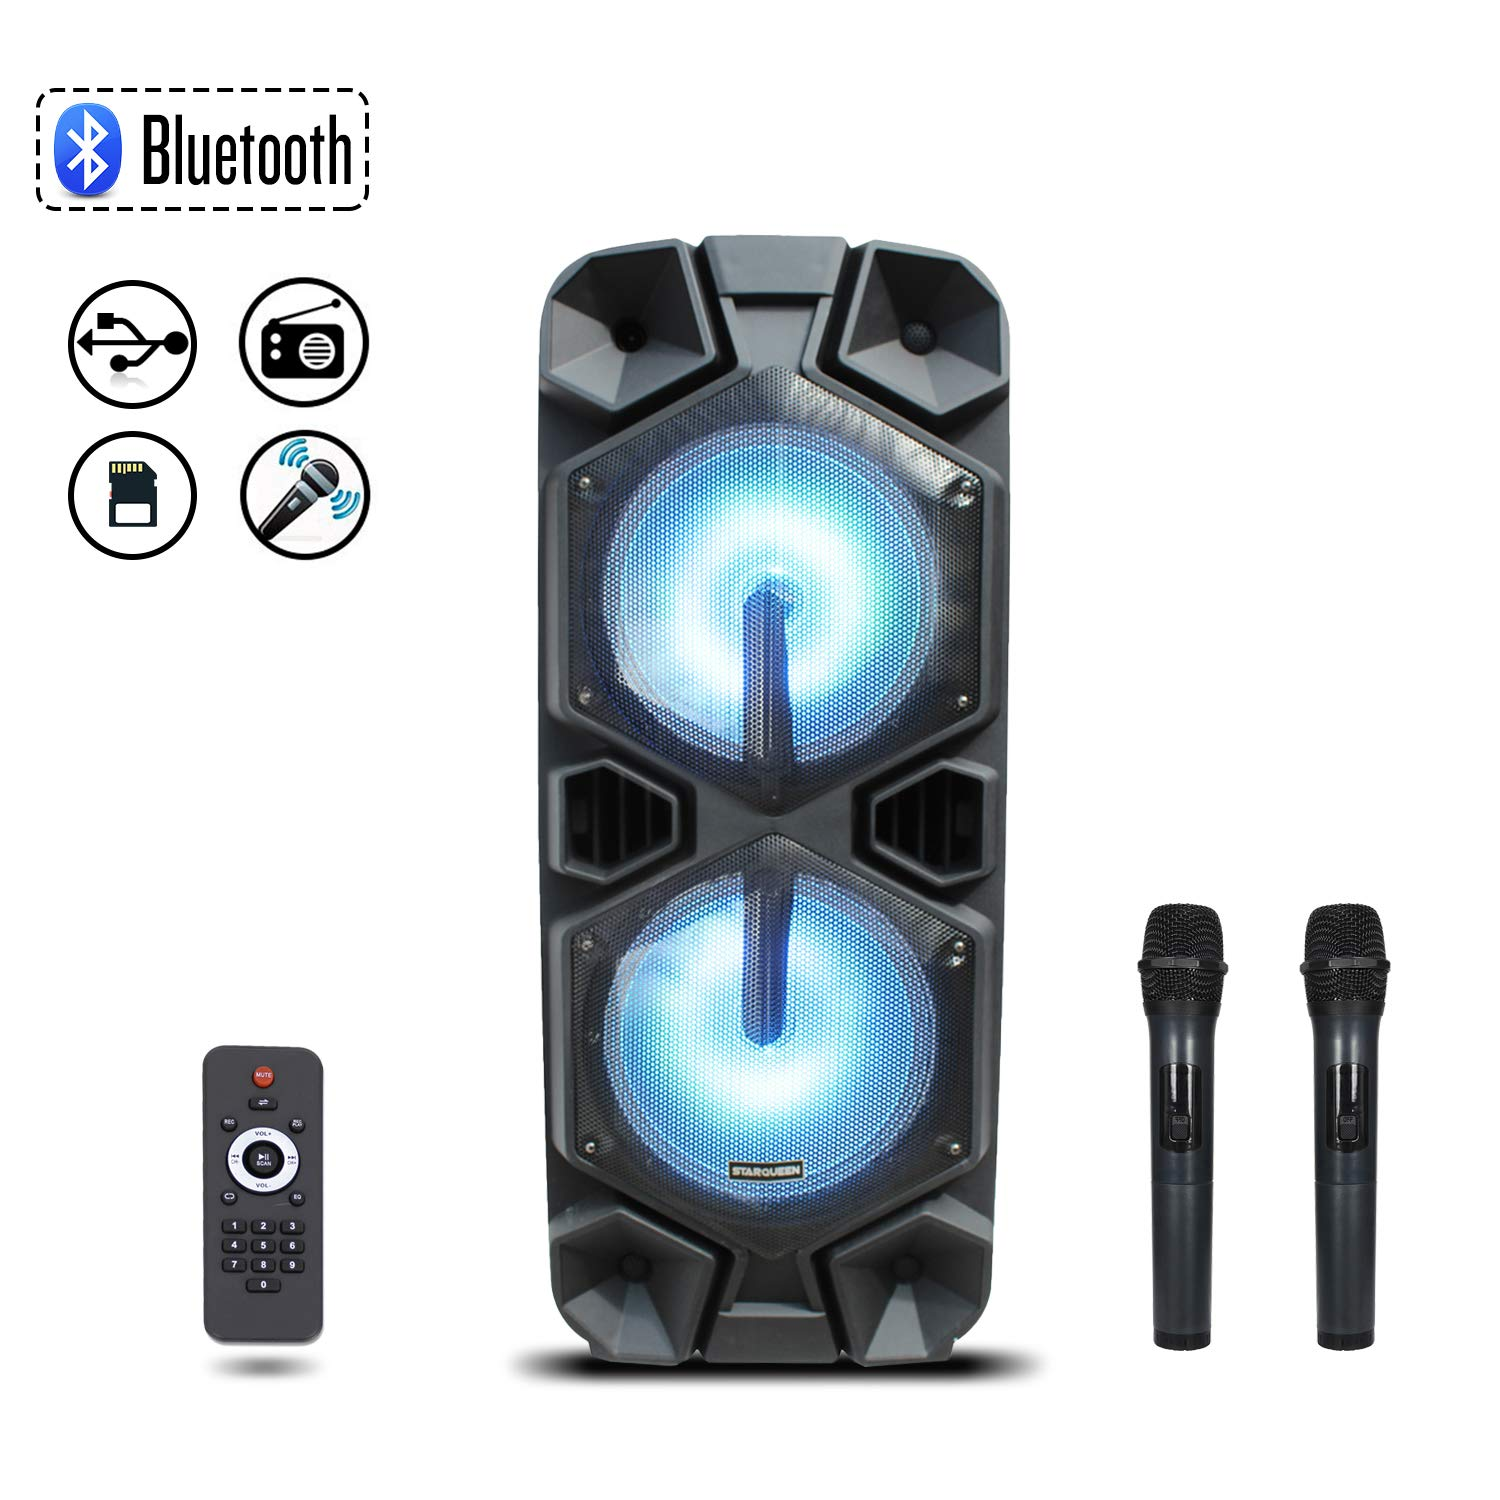 Starqueen Trolley Bluetooth PA Speaker Dual 12'' Woofers with 2 Wireless UHF Microphones, Battery Powered Rechargeable Karaoke DJ Speaker with LED Lights, Active Digital Sound Box, FM/MP3/USB/SD/TF/AUX